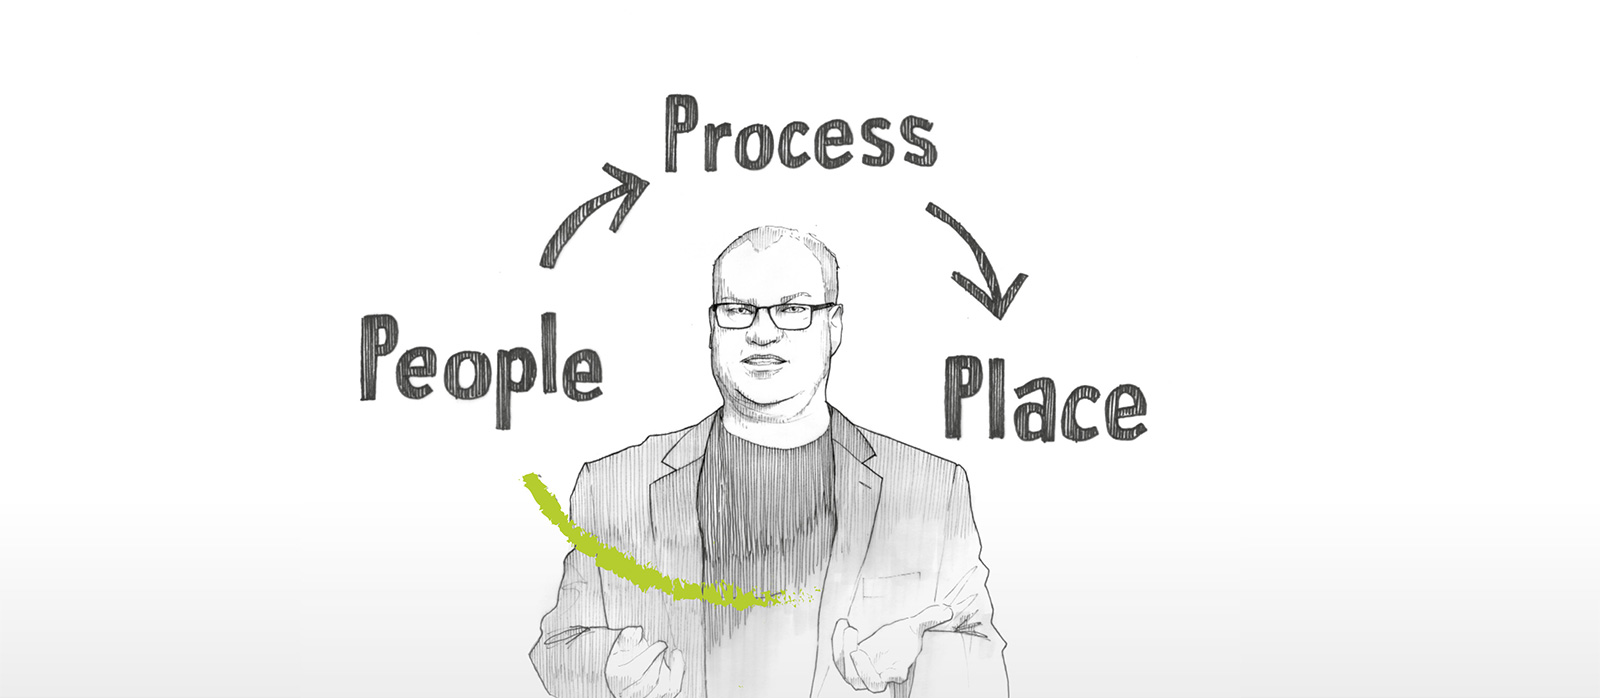 people-process-place – Was ist das?